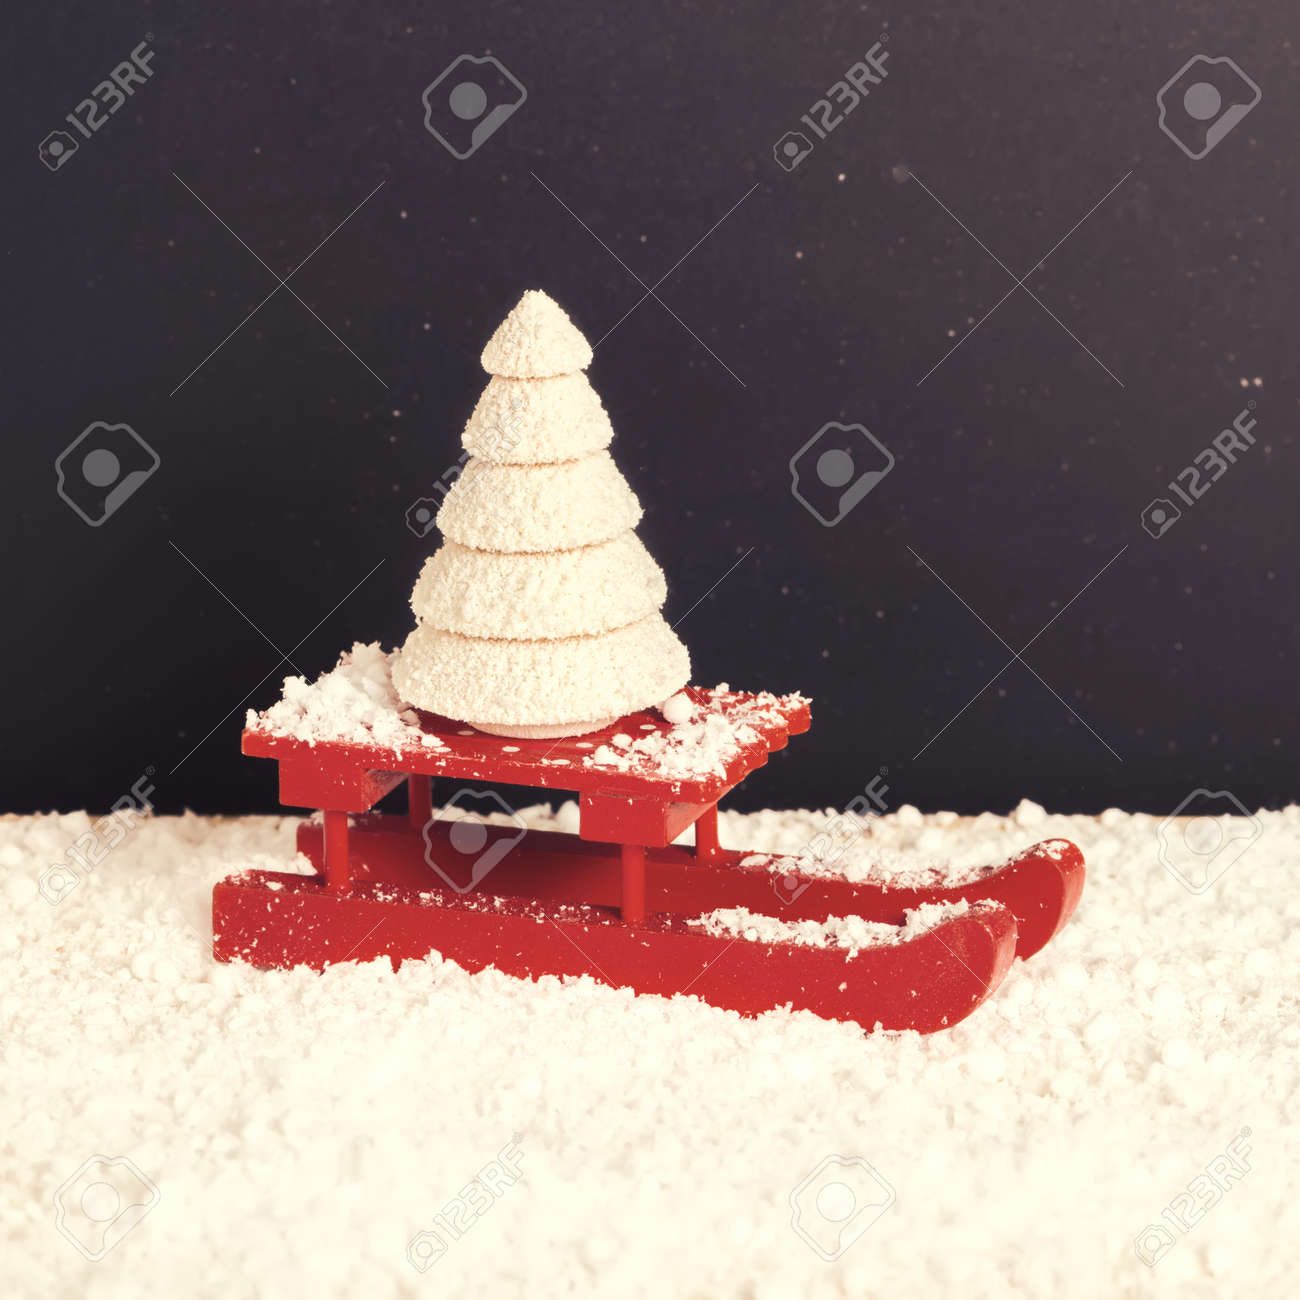 Red Festive Sled With Spruce Tree In Snow On Chalkboard Background